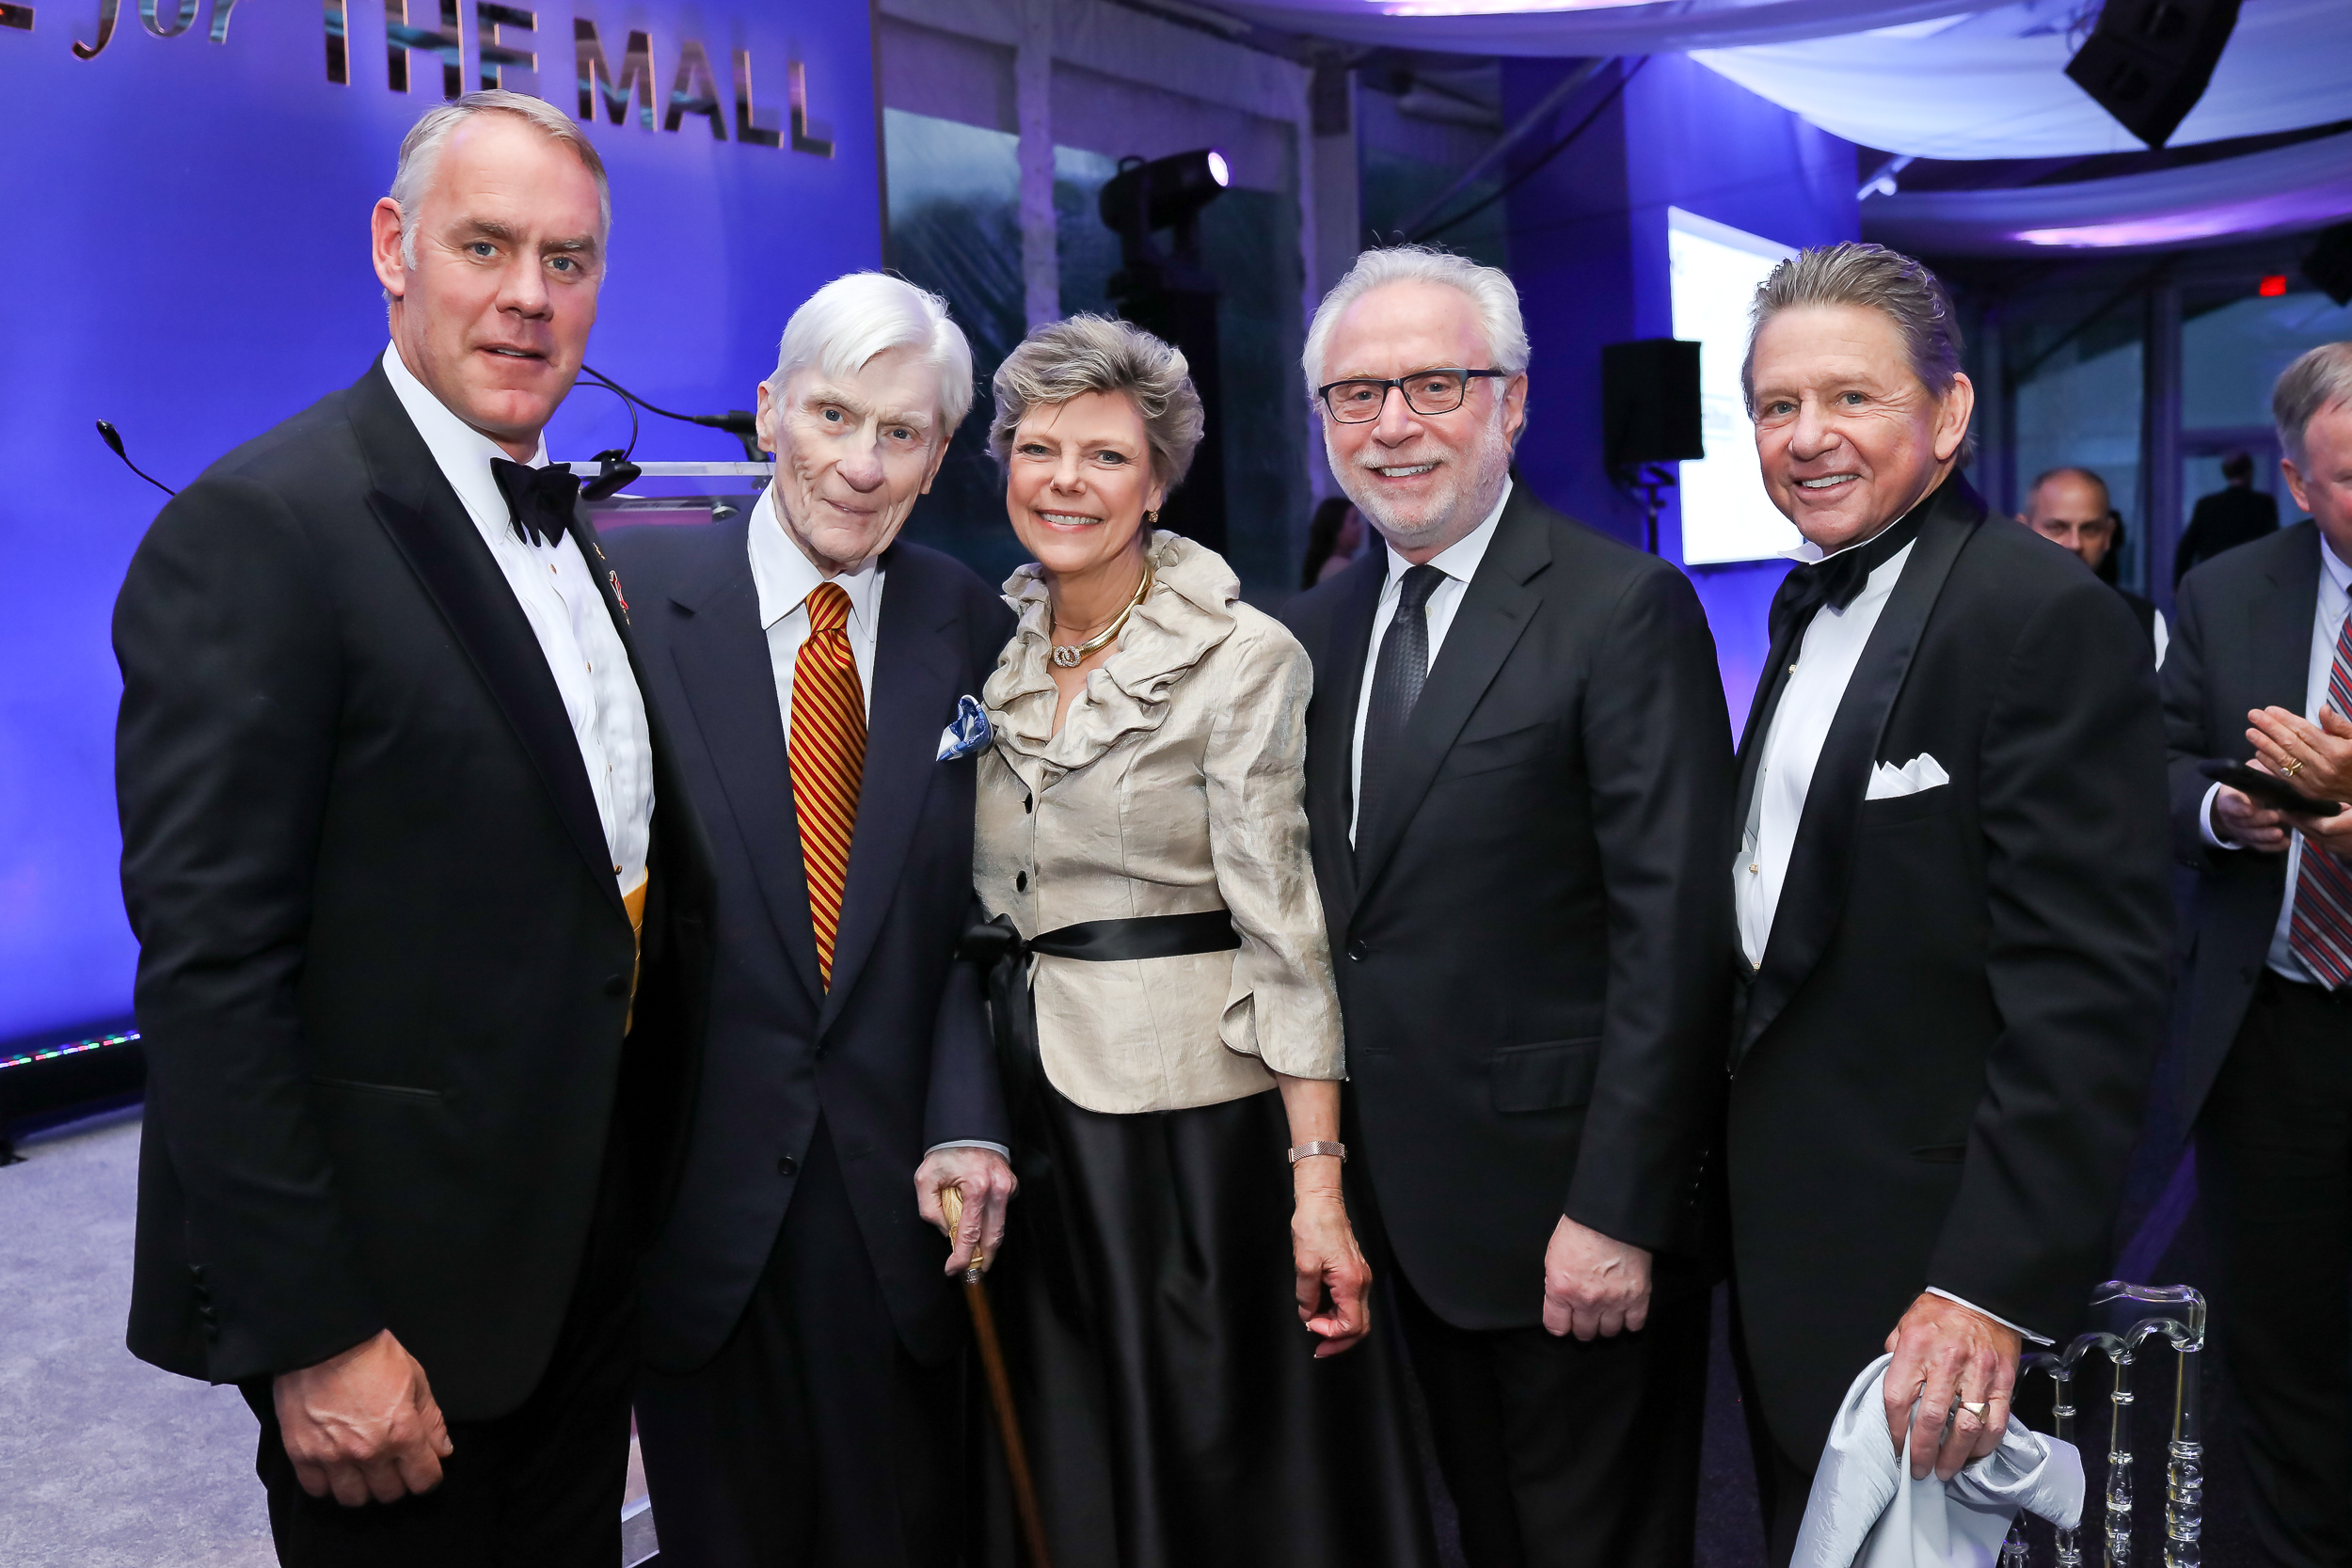 National Park Week Celebrated at 11th Annual BALL for THE MALL images 3